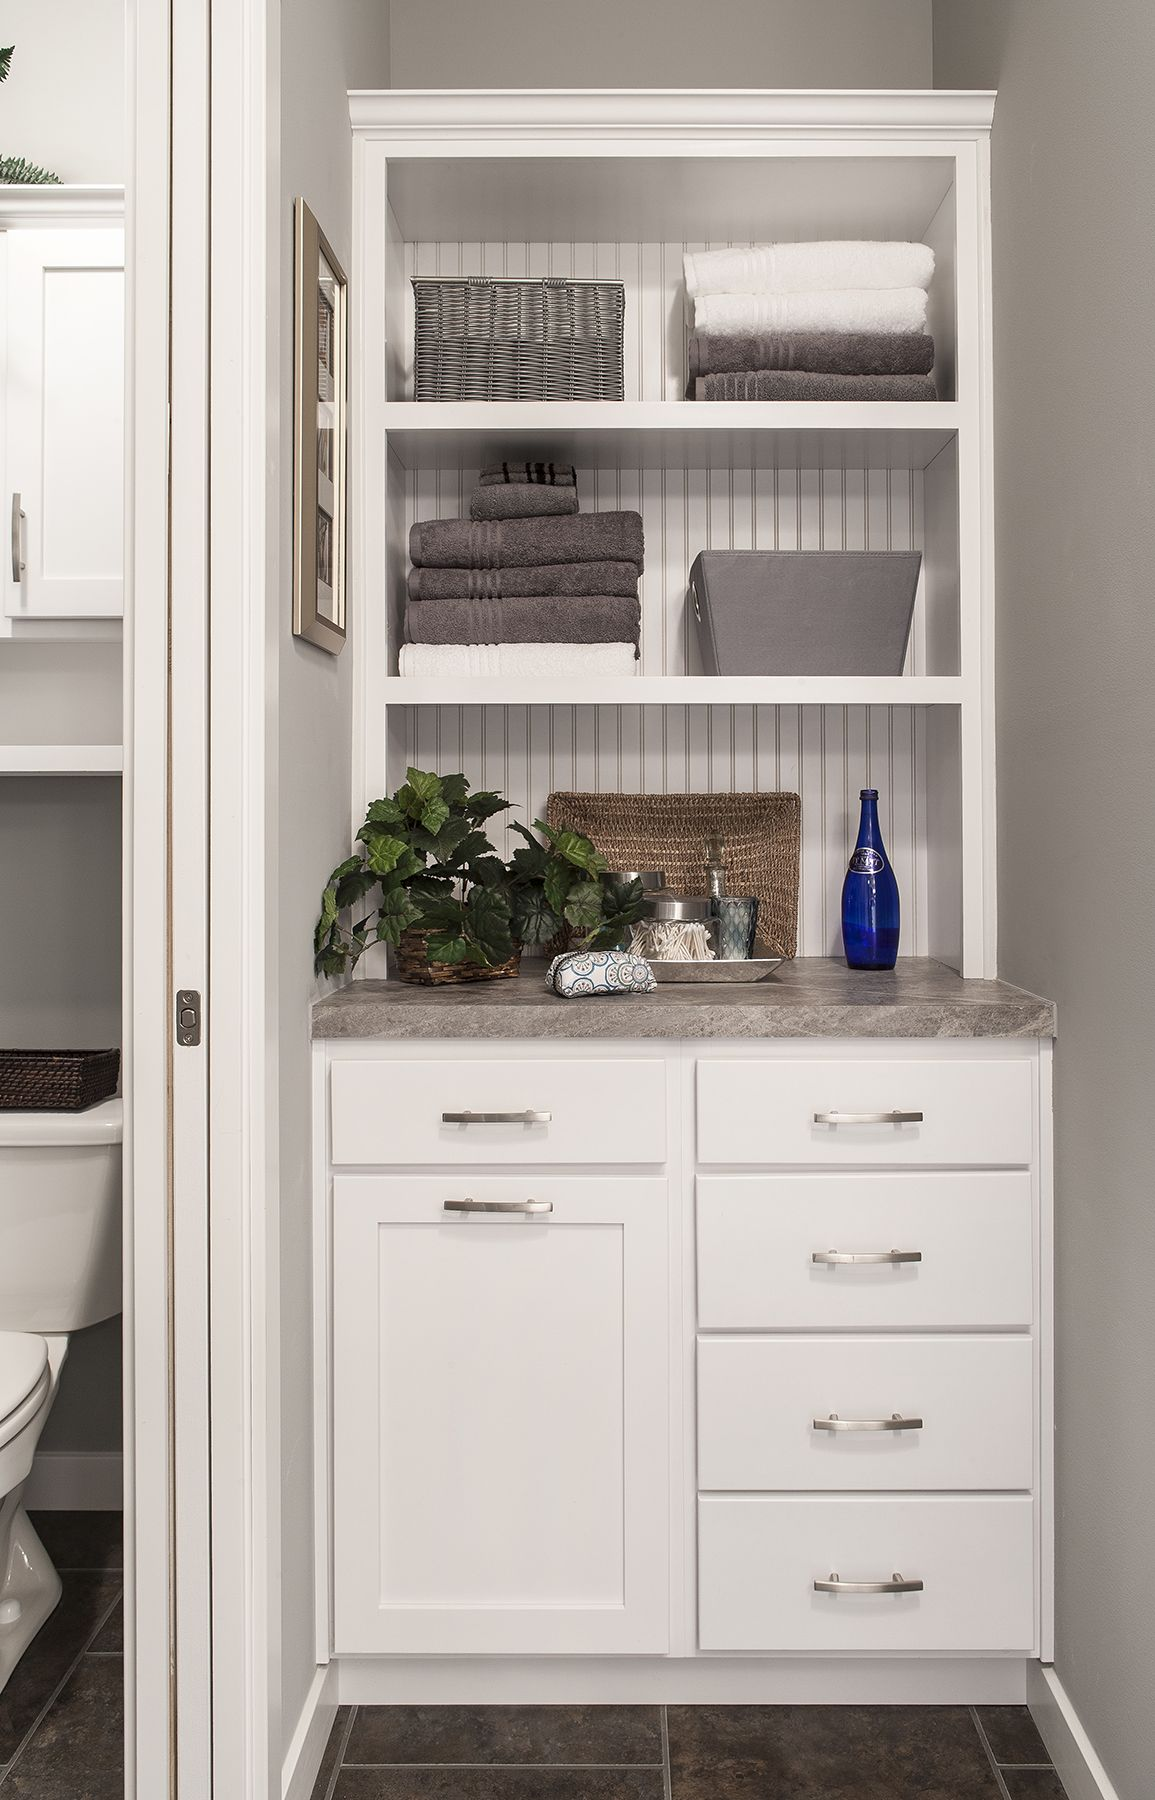 Spa Cabinet Tower in the Master Bath Bottom left cabinet front is a